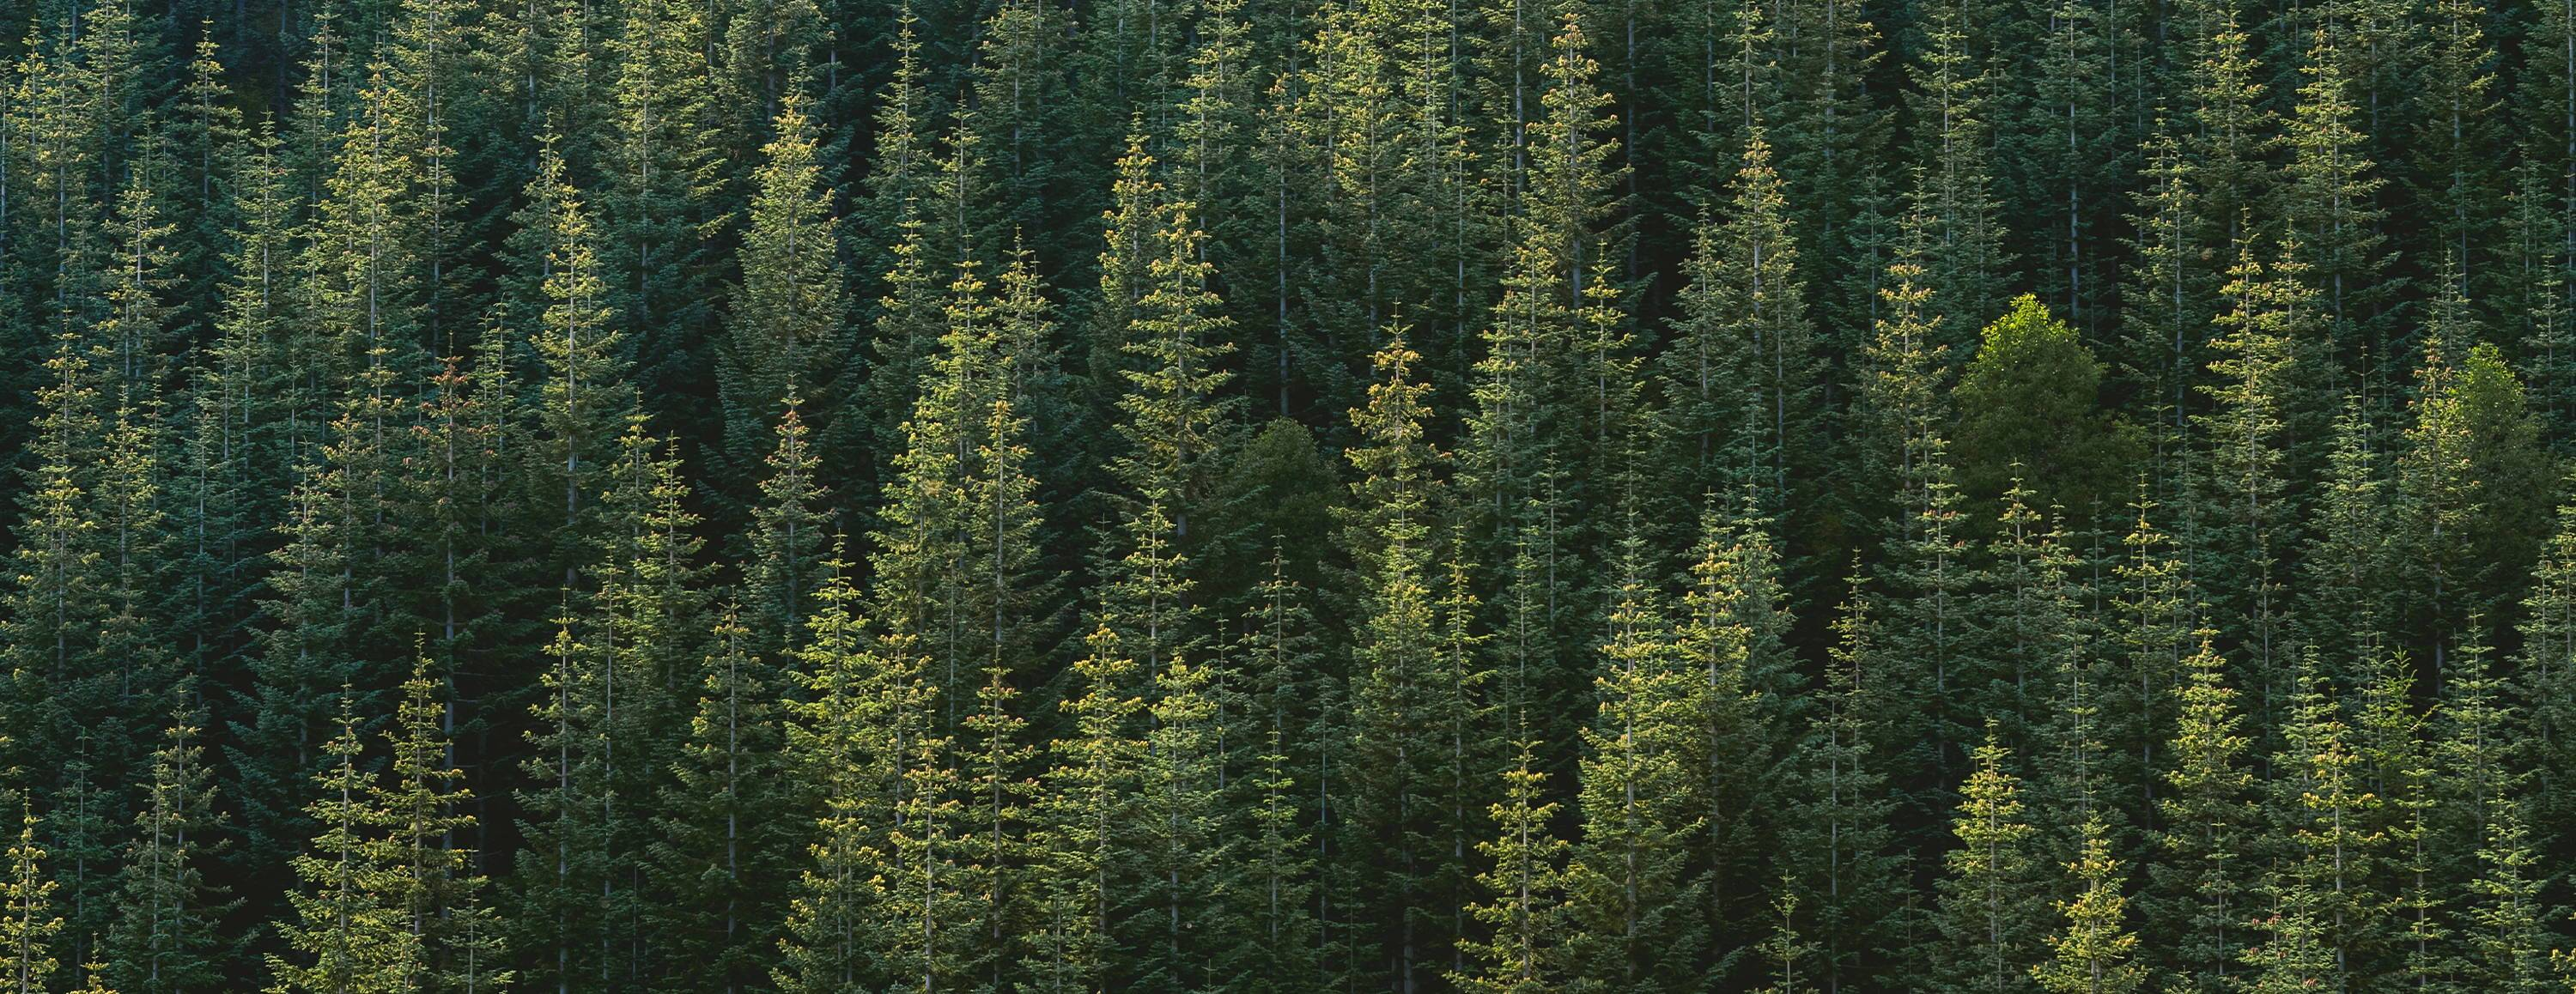 green_forest_of_beautiful_pine_trees